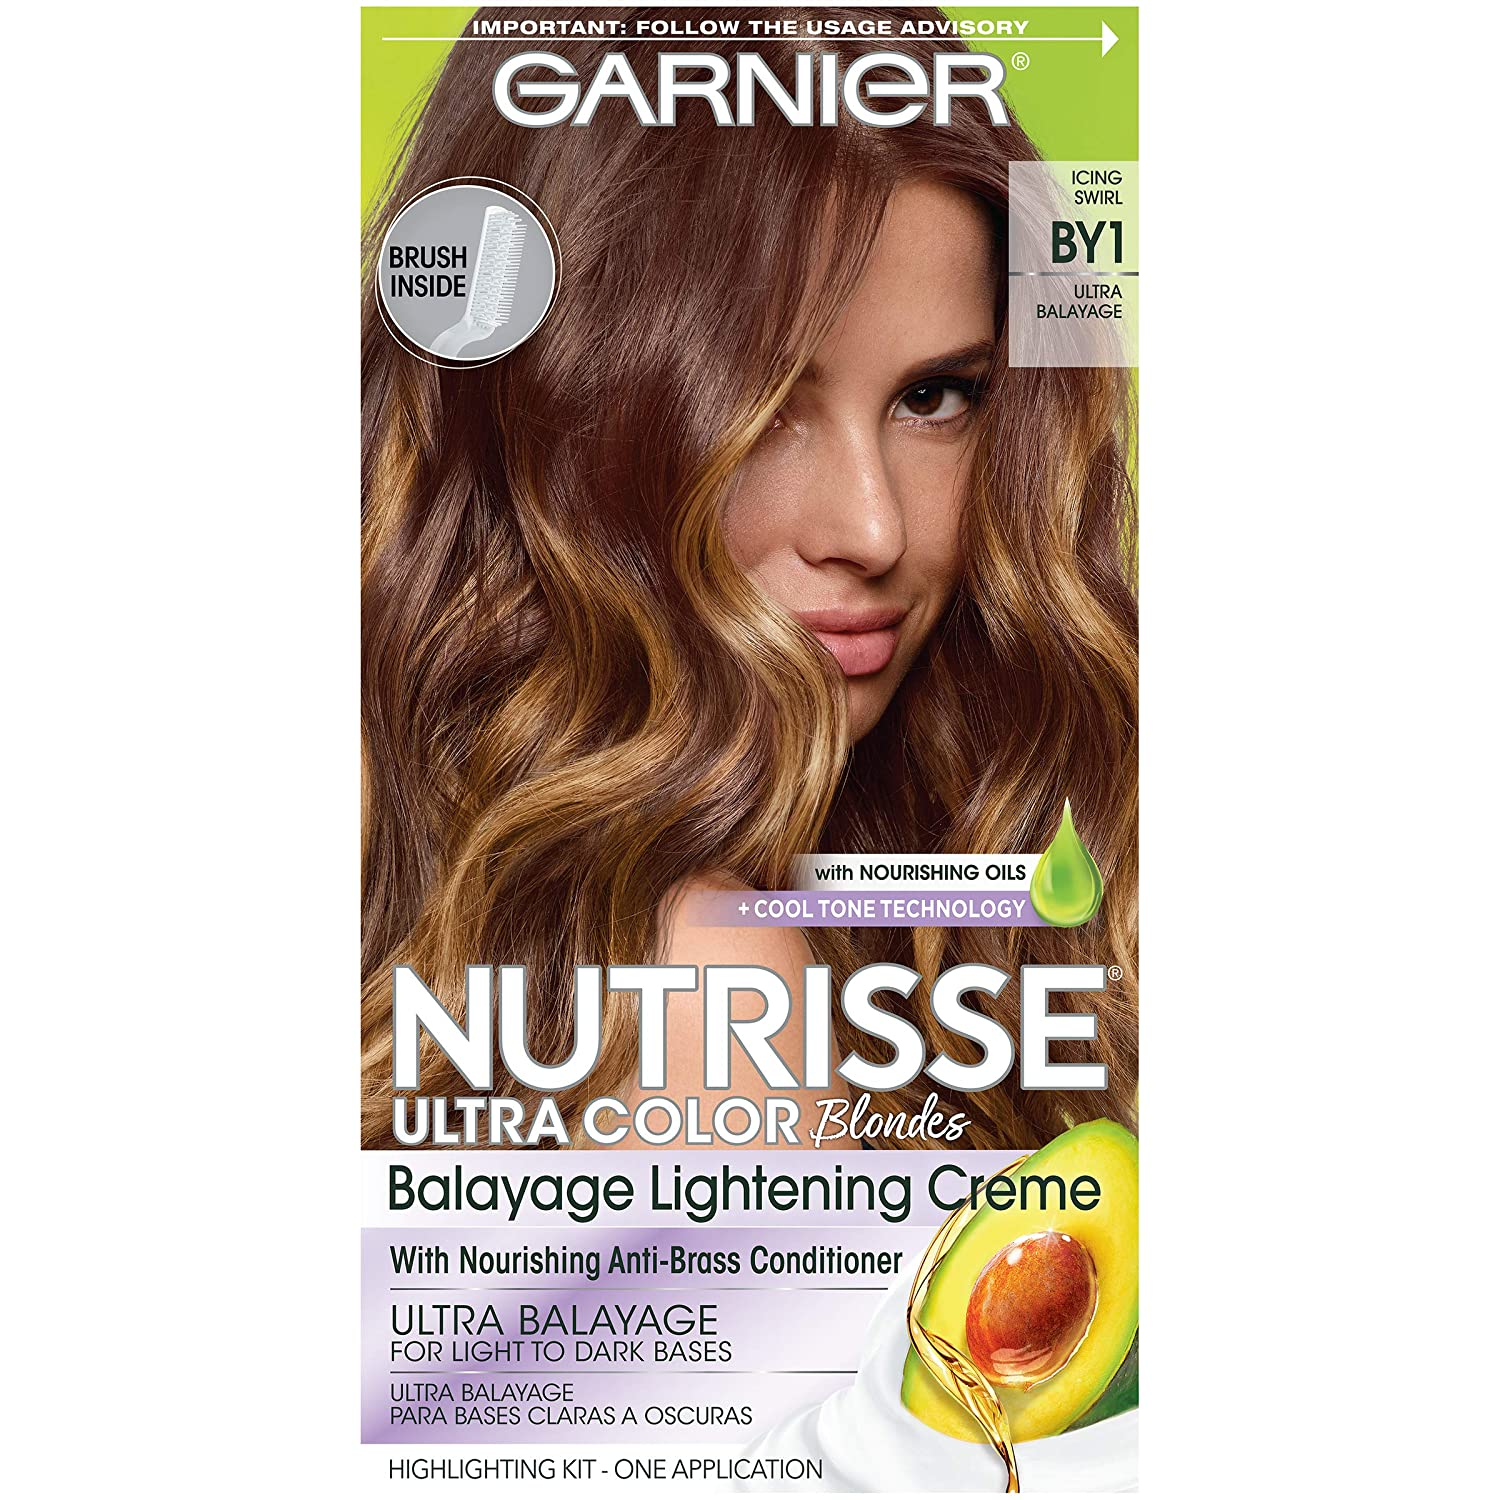 Garnier Hair Color Nutrisse Ultra Color Nourishing Hair Color Creme, Icing Swirl By1, Pack of 1